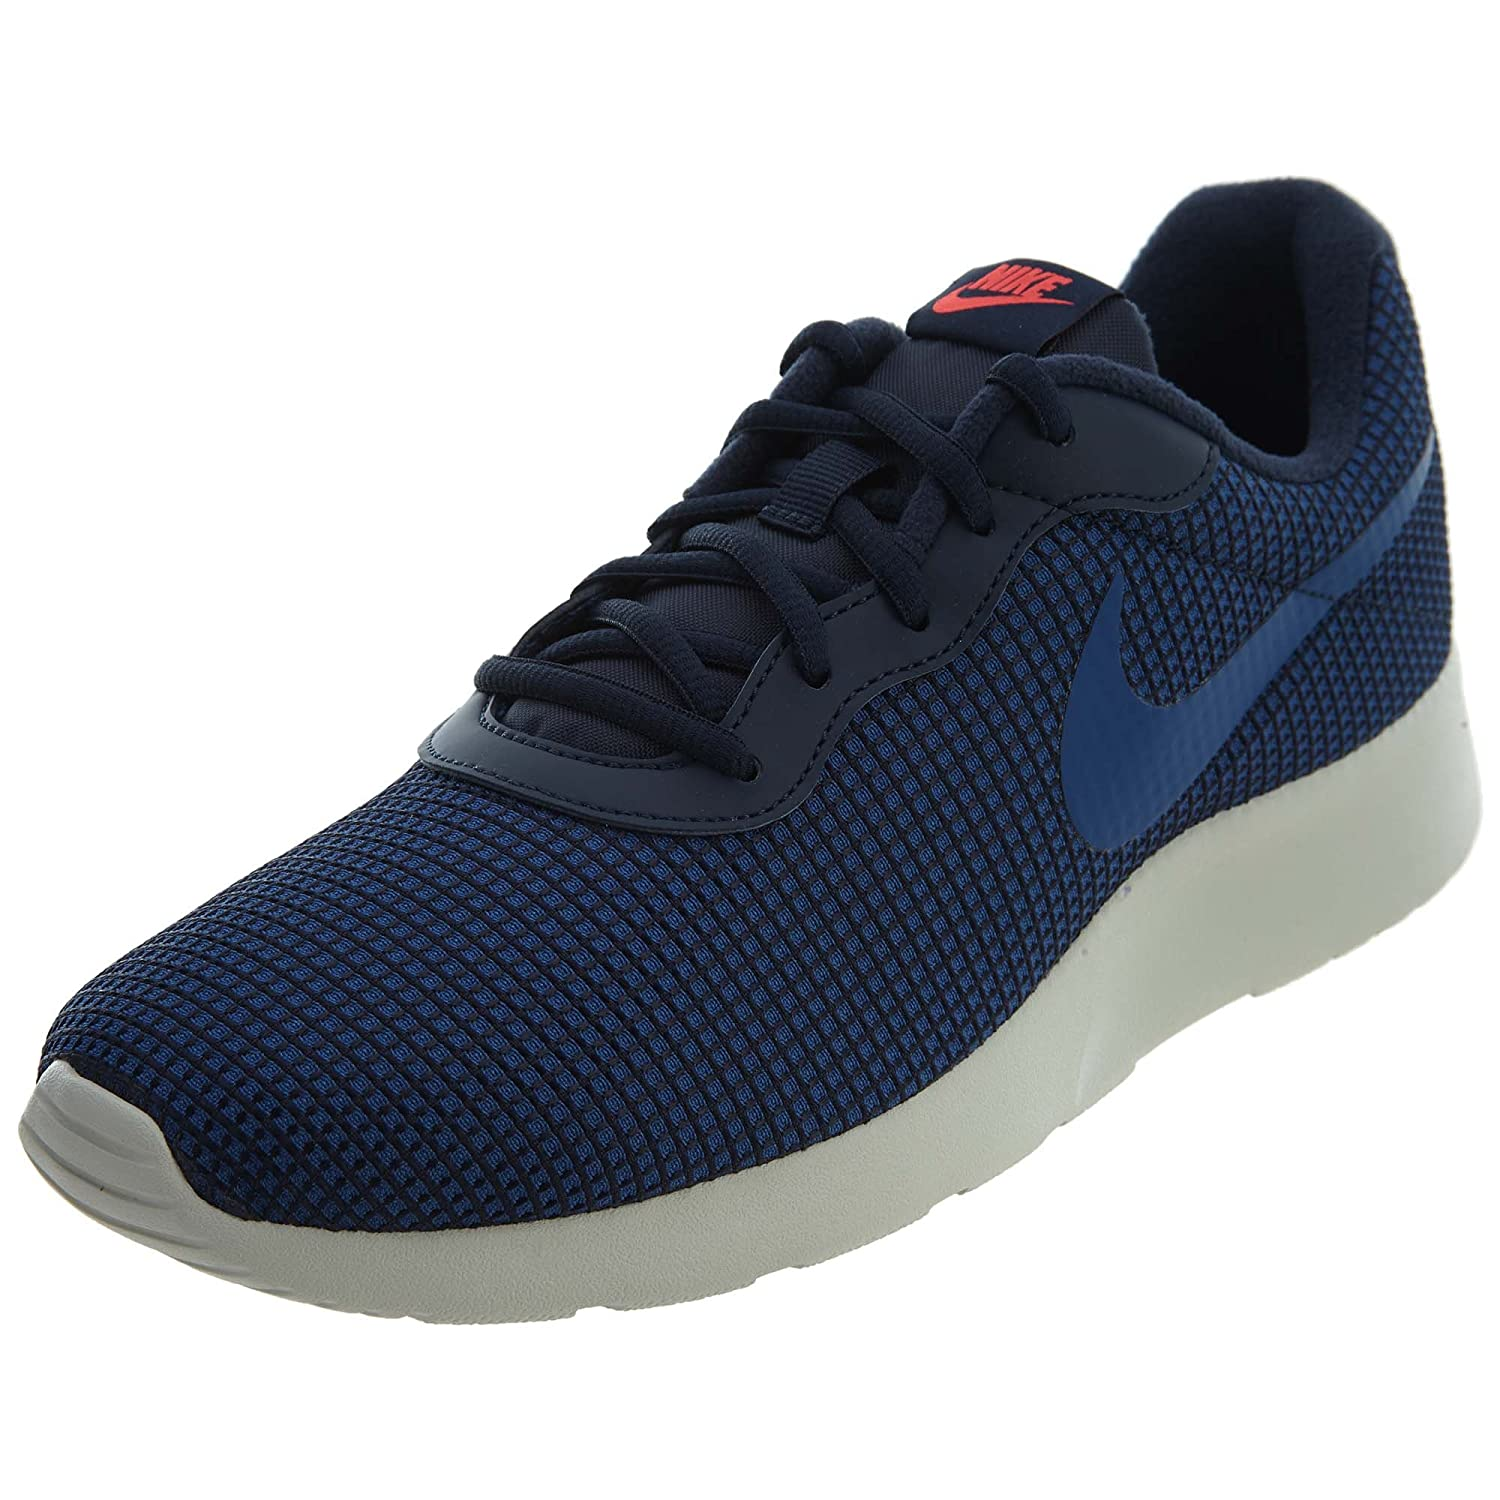 NIKE Men's Tanjun Sneakers, Breathable Textile Uppers and Comfortable Lightweight Cushioning 8.5 D(M) US Obsidian/Gym Blue/Solar Red/Light Bone